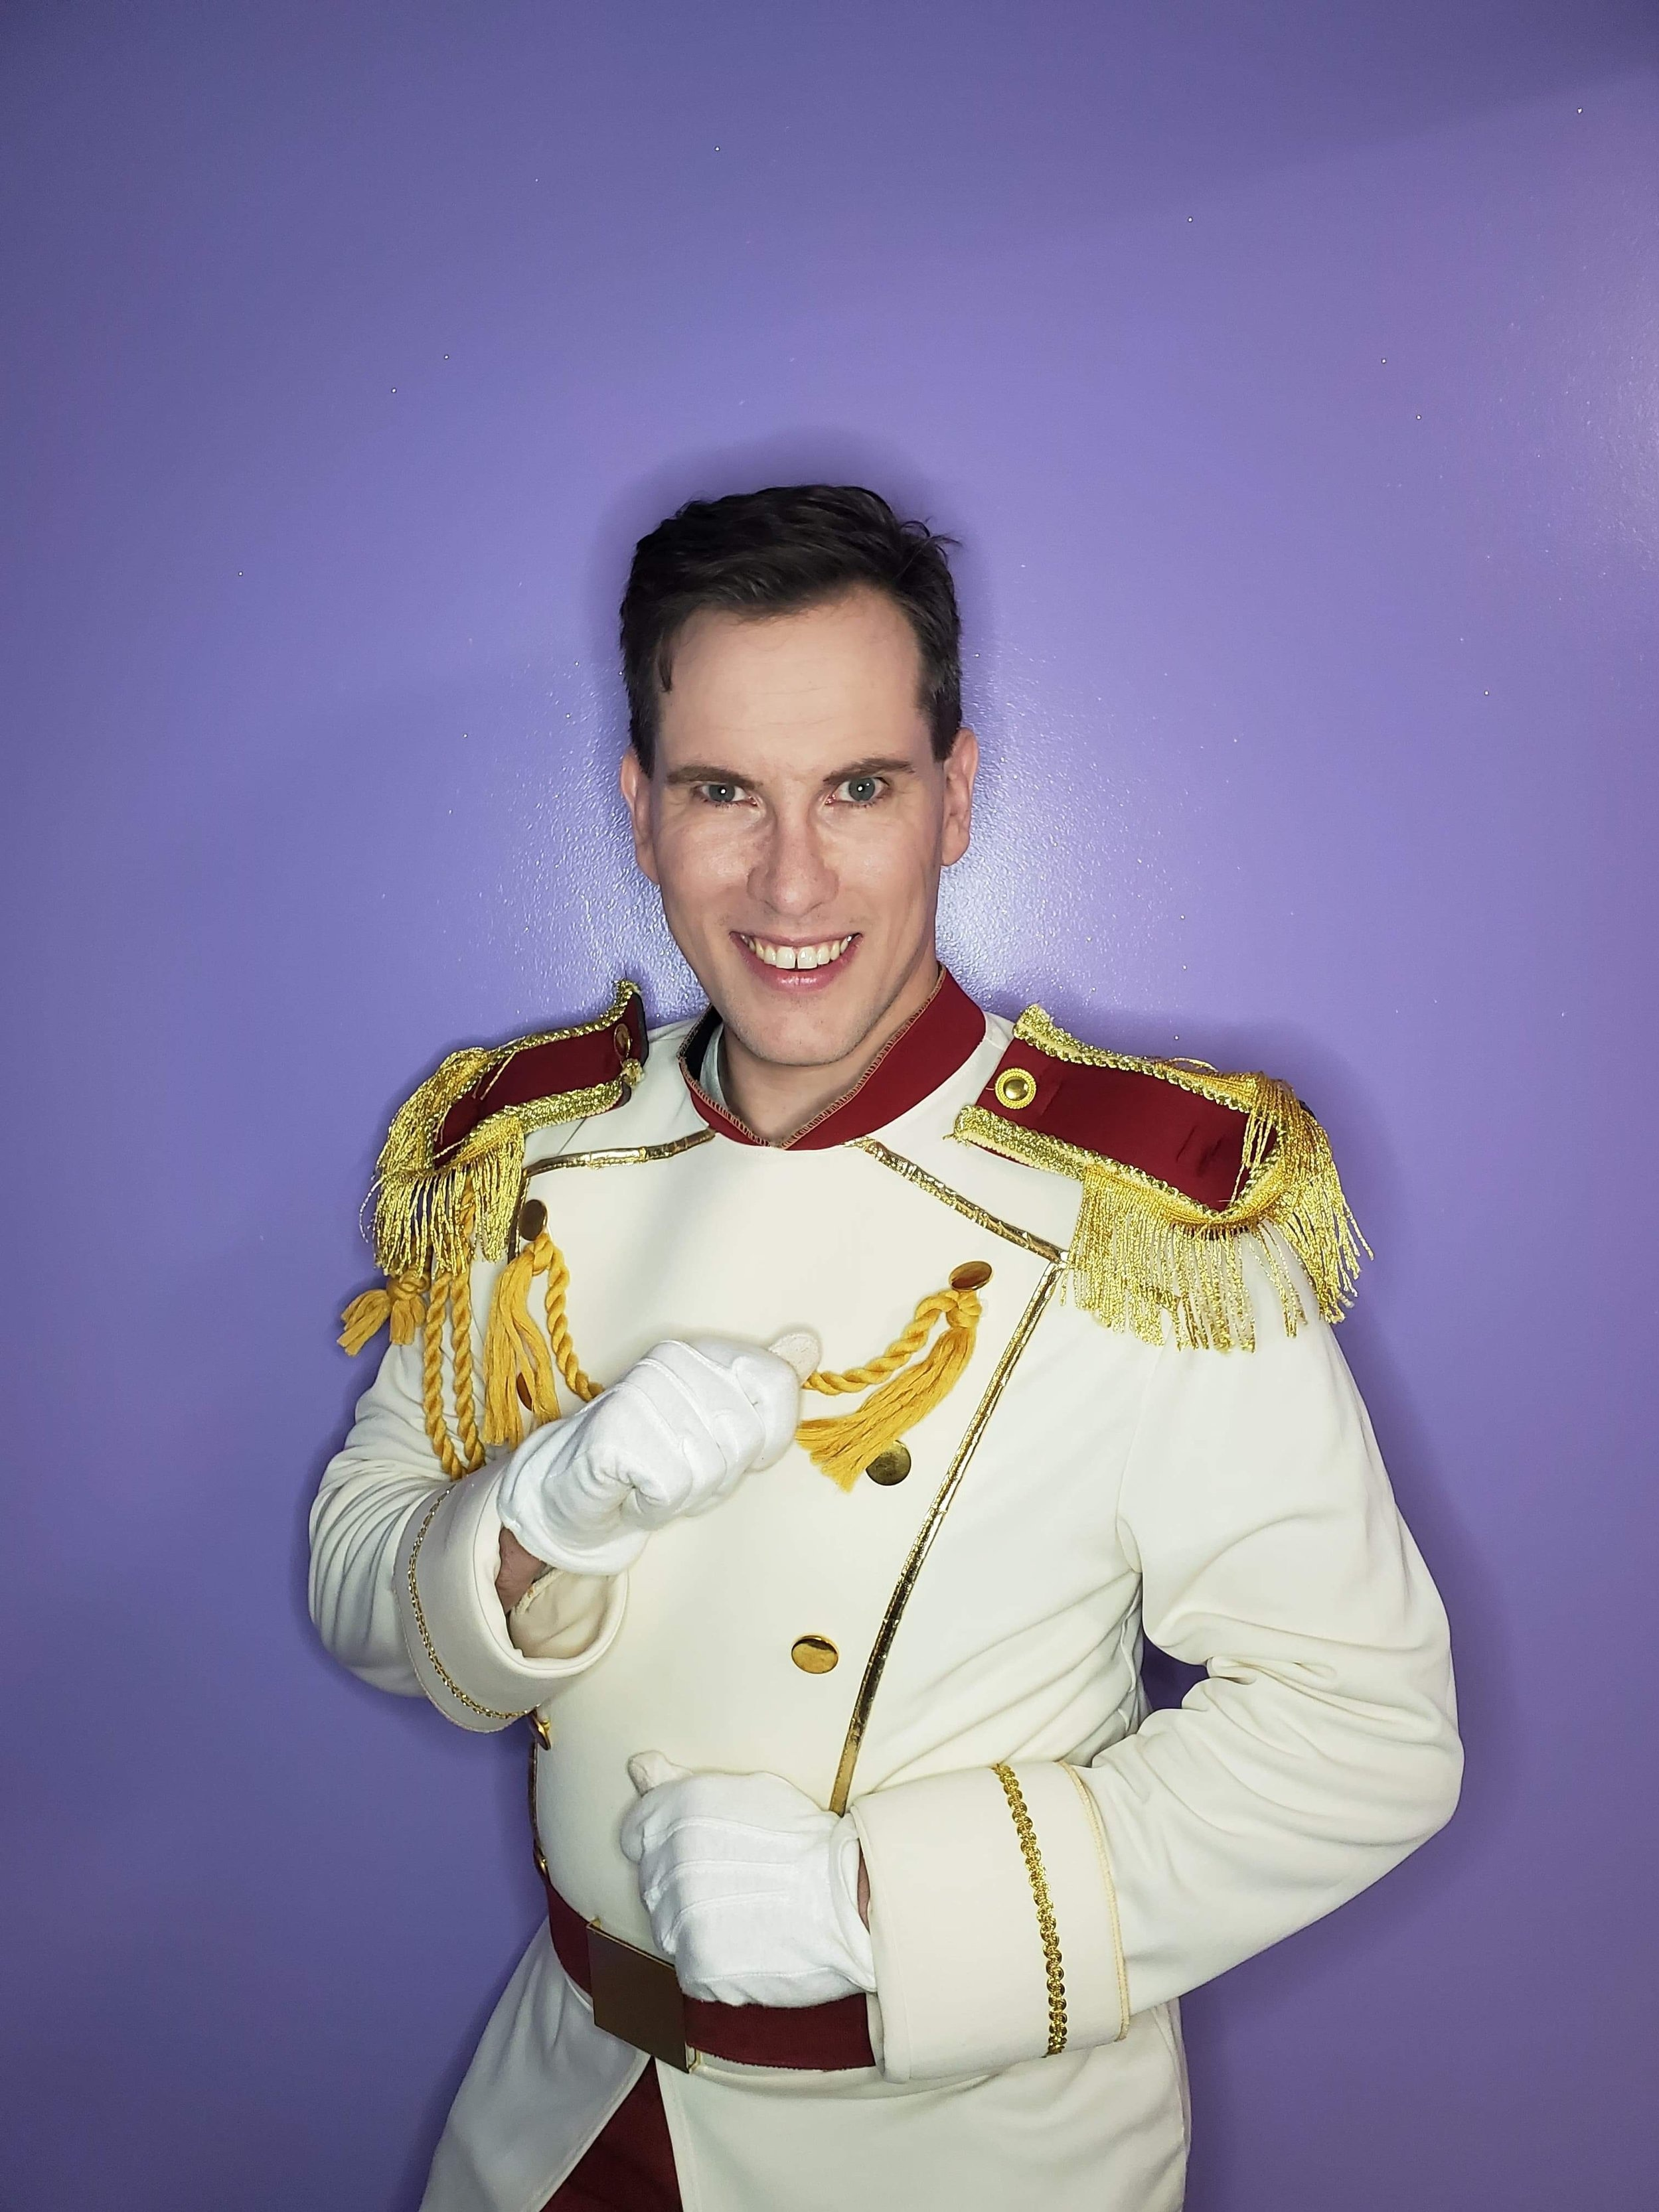 Prince Charming - Book now